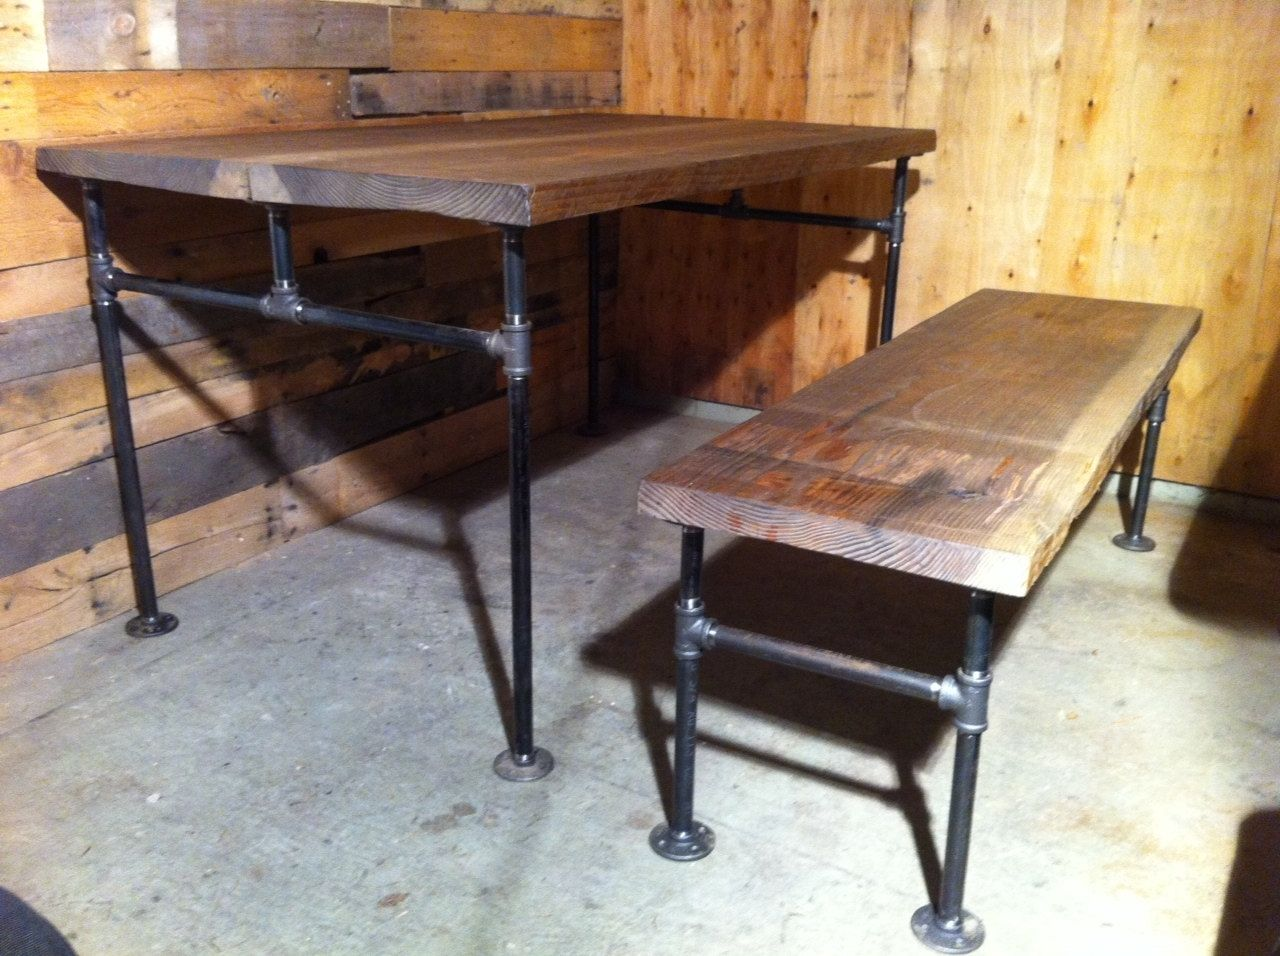 ... Dining Table by J&S Reclaimed Wood Custom Furniture | CustomMade.com